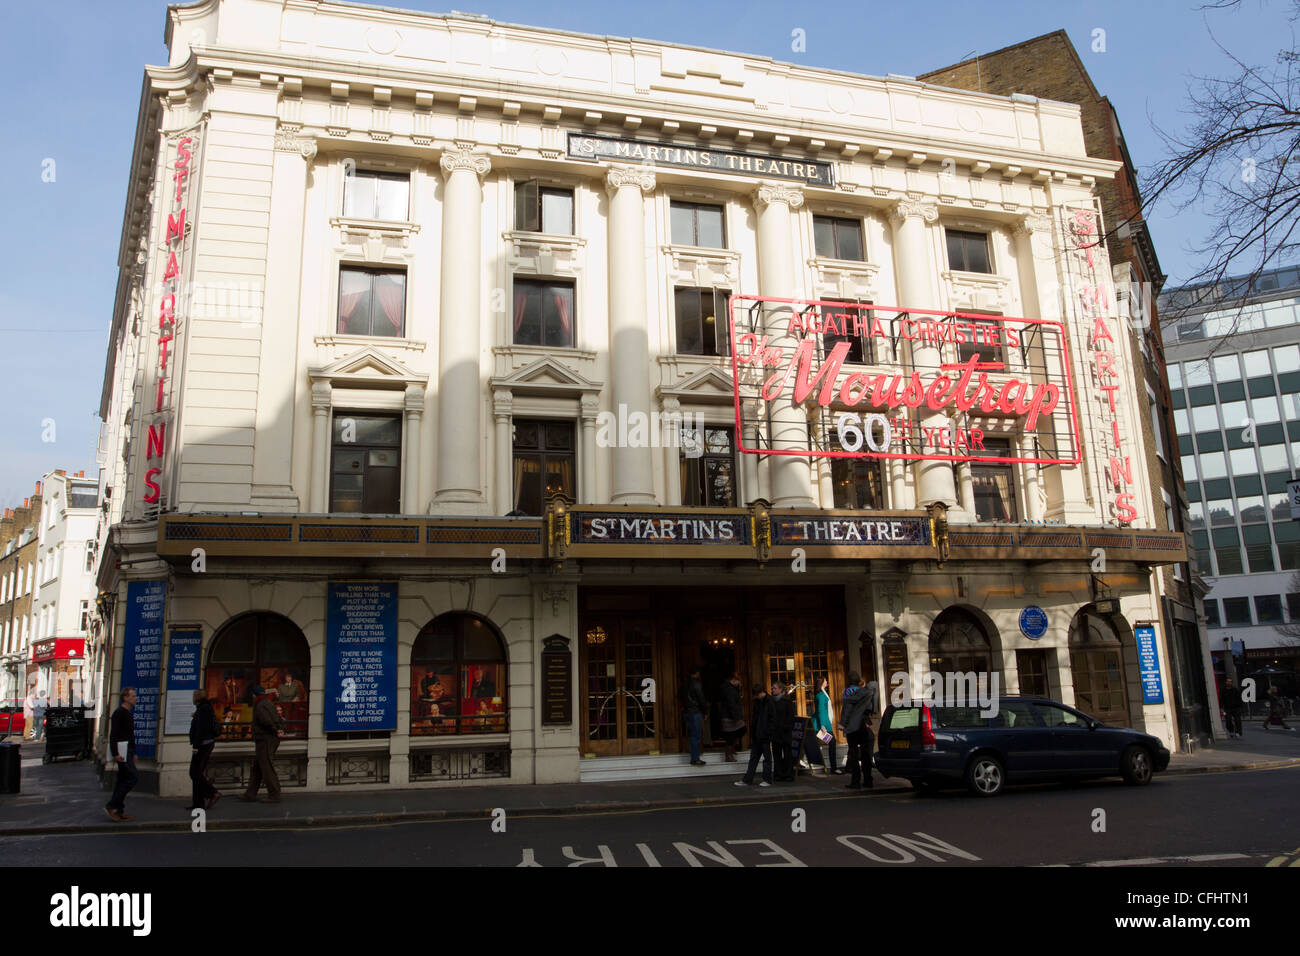 St Martins Theatre, Londons West End, home of the Moustrap, a play by Agatha Christie.  London, England, UK - Stock Image